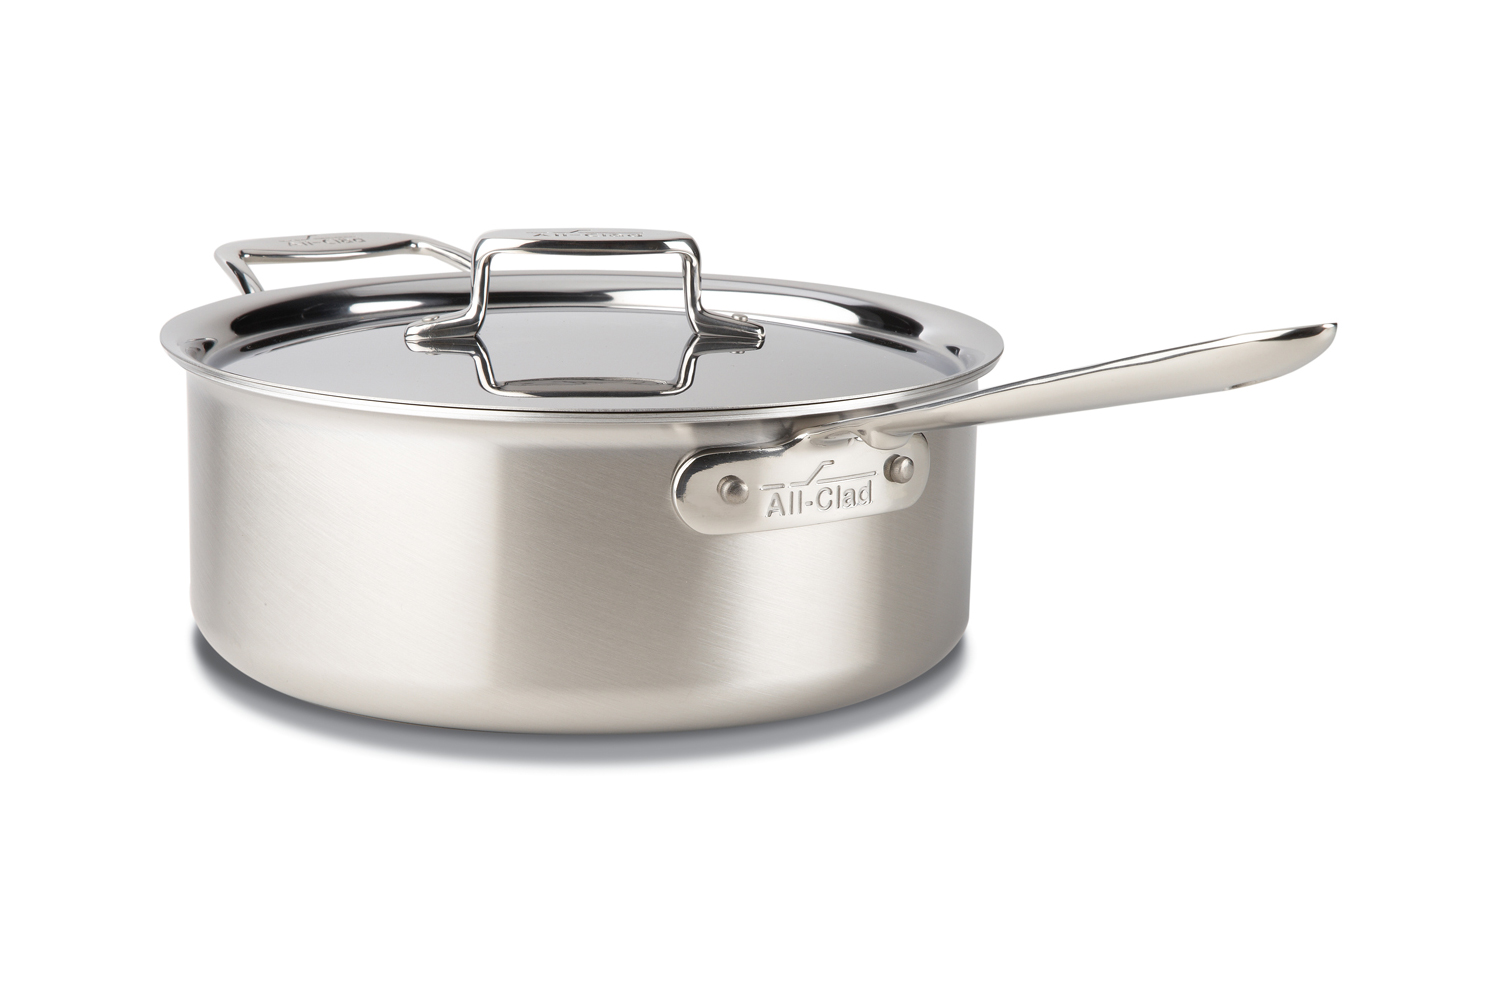 All-Clad d5 Brushed Stainless 6 qt. Deep Saute Pan w/Lid